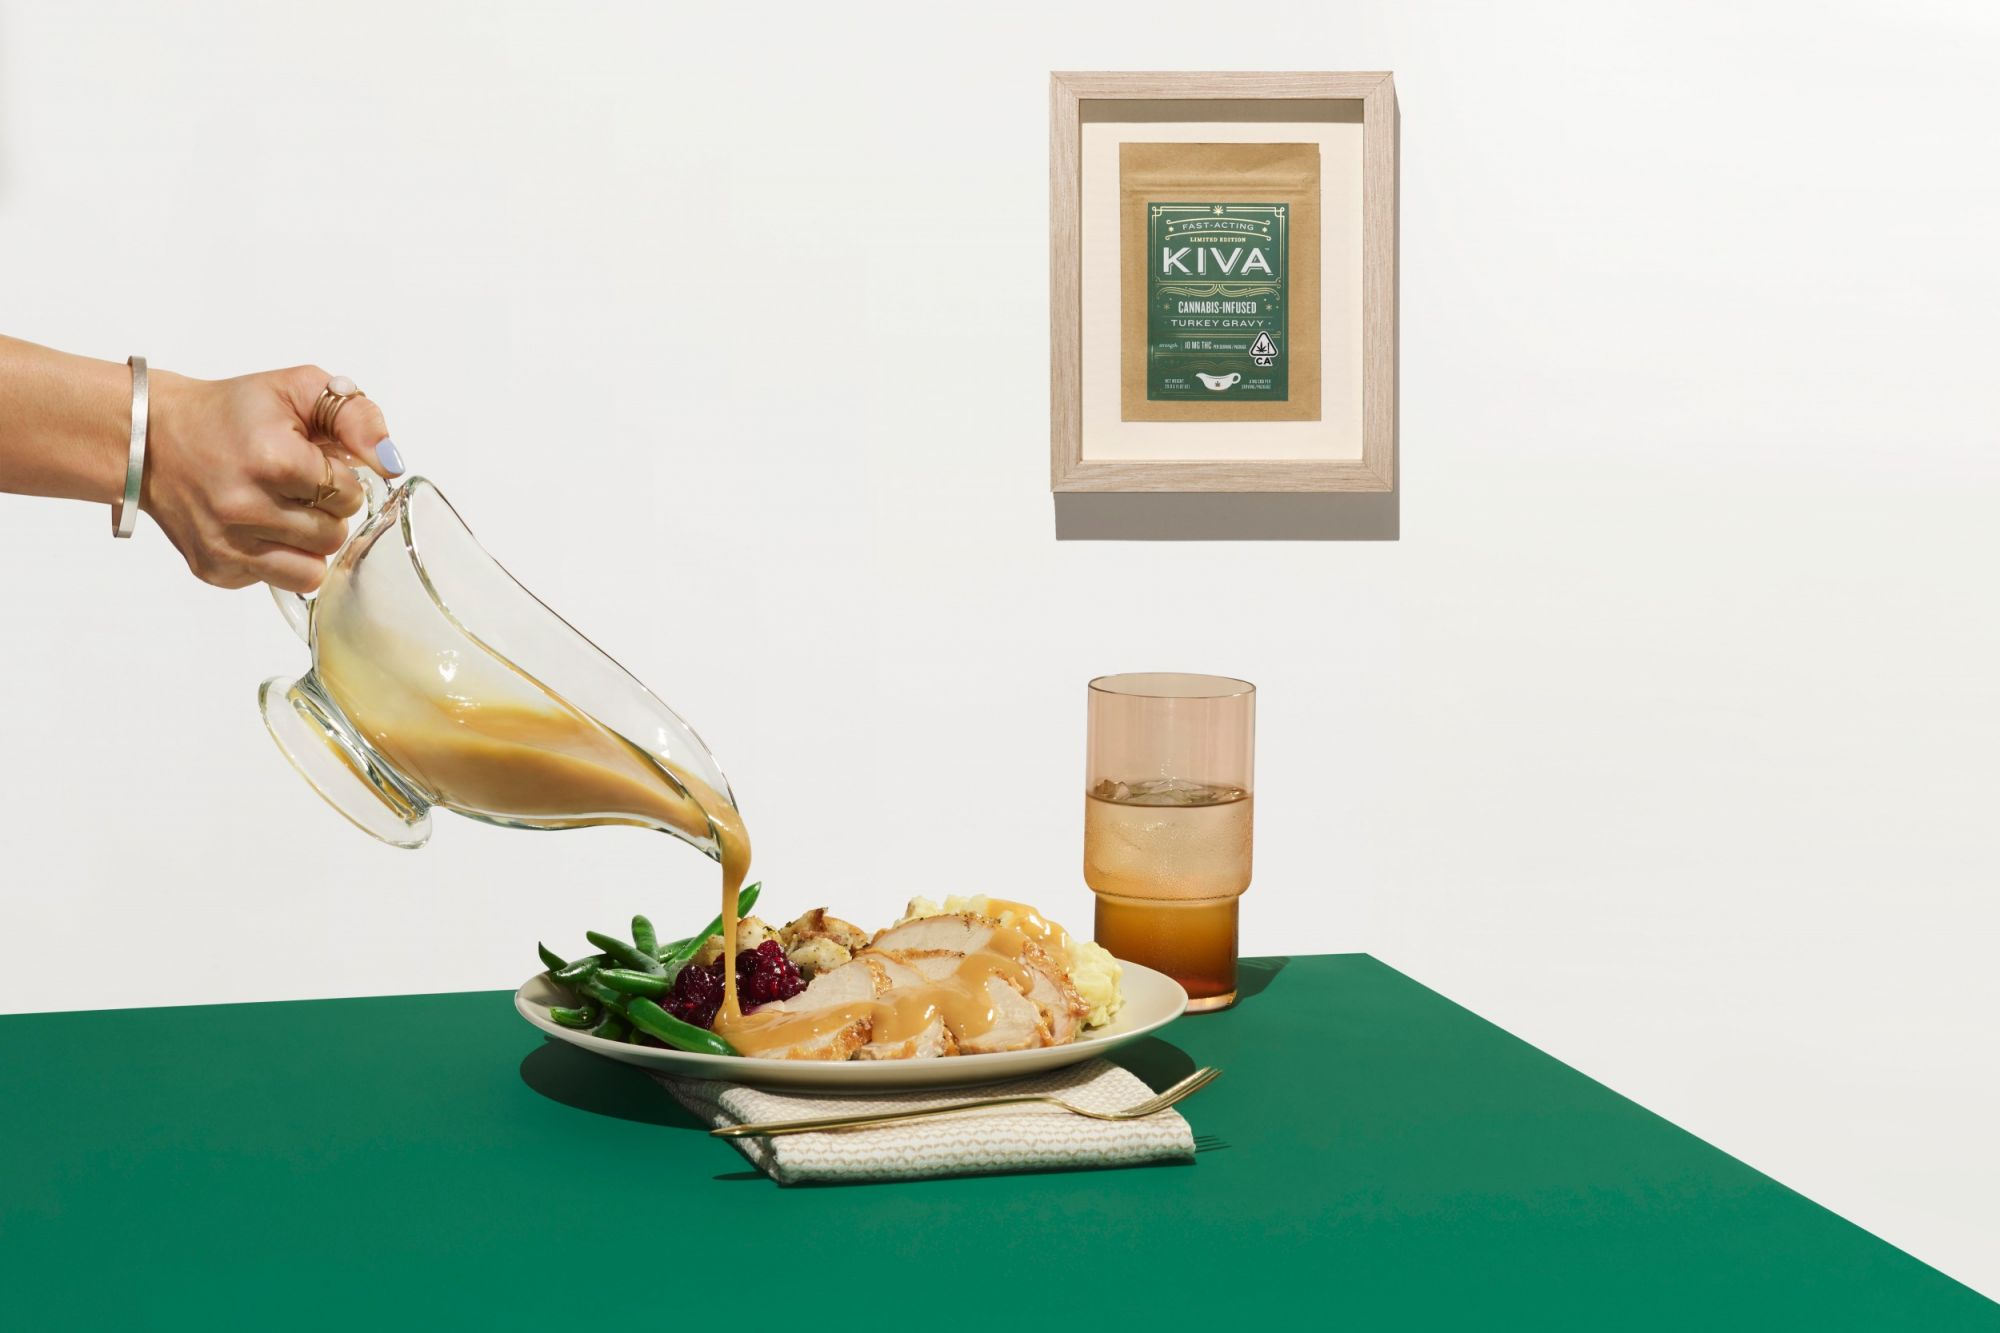 Kiva Confections' Fast-Acting, Cannabis-Infused Turkey Gravy Will Make Thanksgiving Even More Relaxing